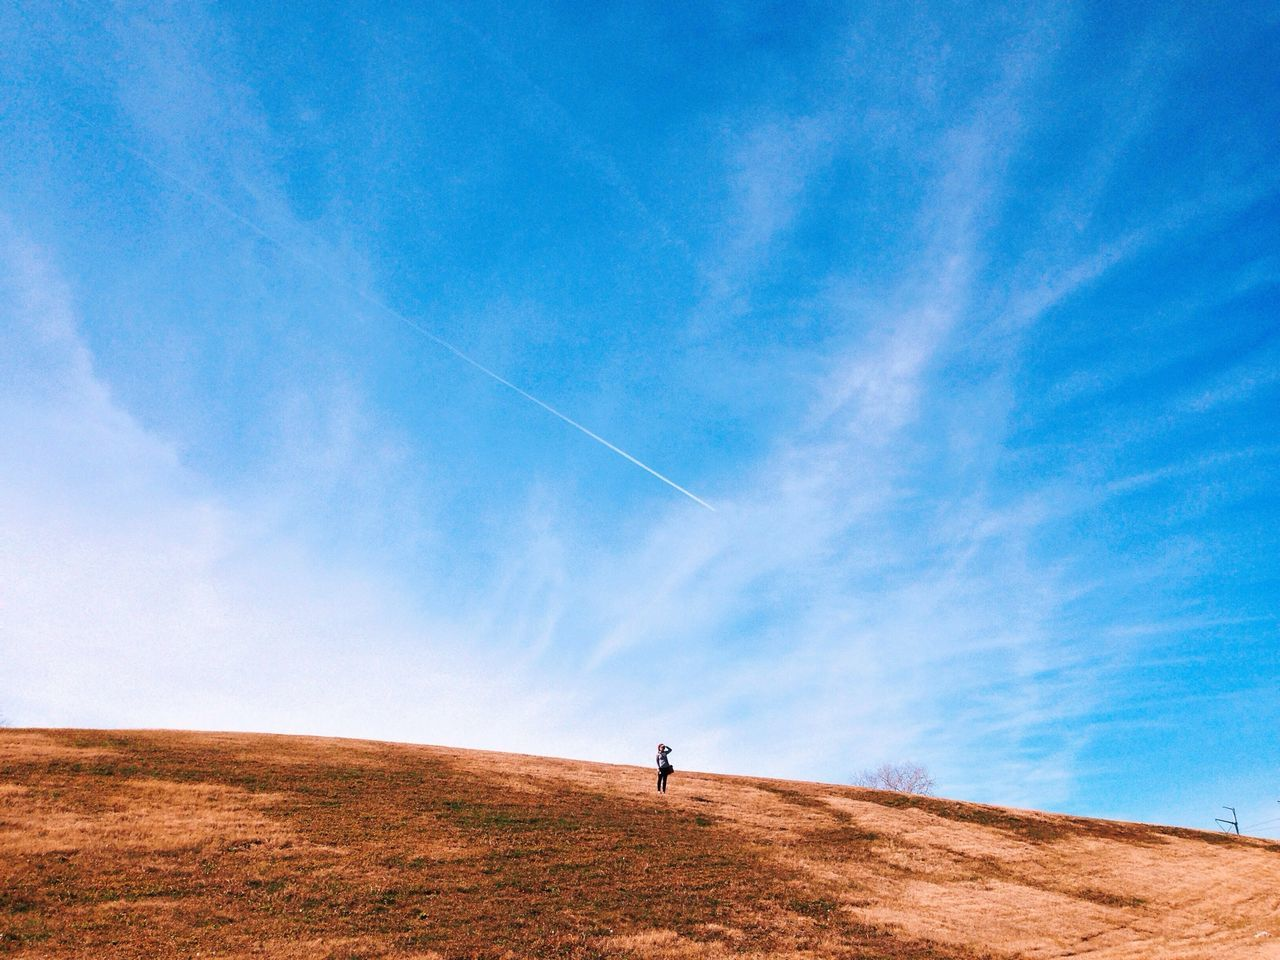 Person standing on arid landscape against cloudy sky